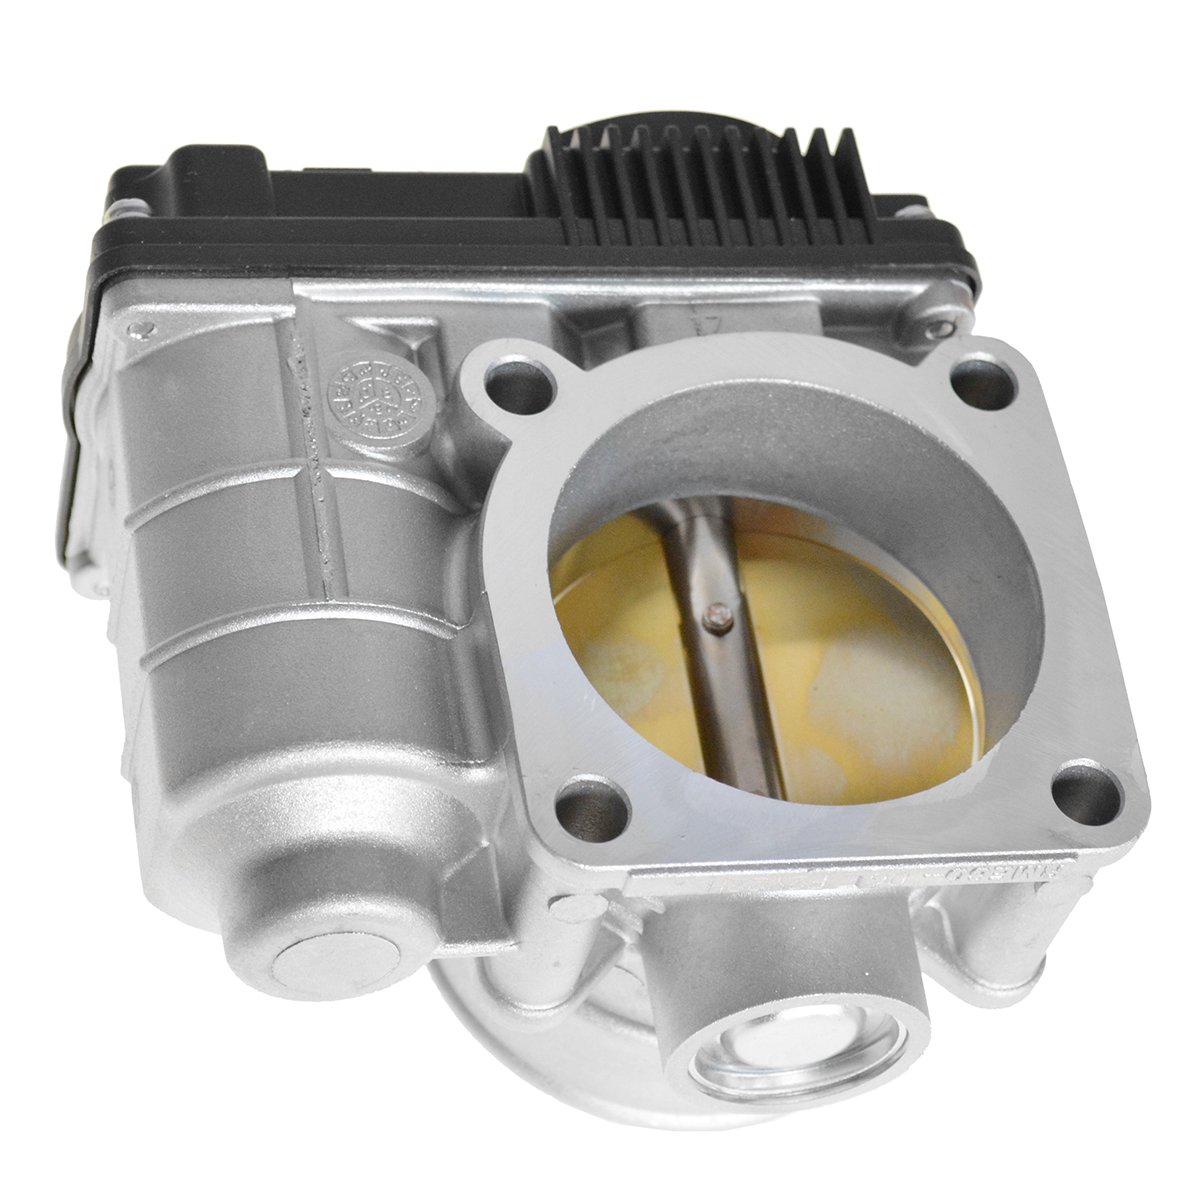 Electronic Throttle Body Assembly for 02-06 Nissan Altima Sentra X-Trail 2.5L 1A Auto